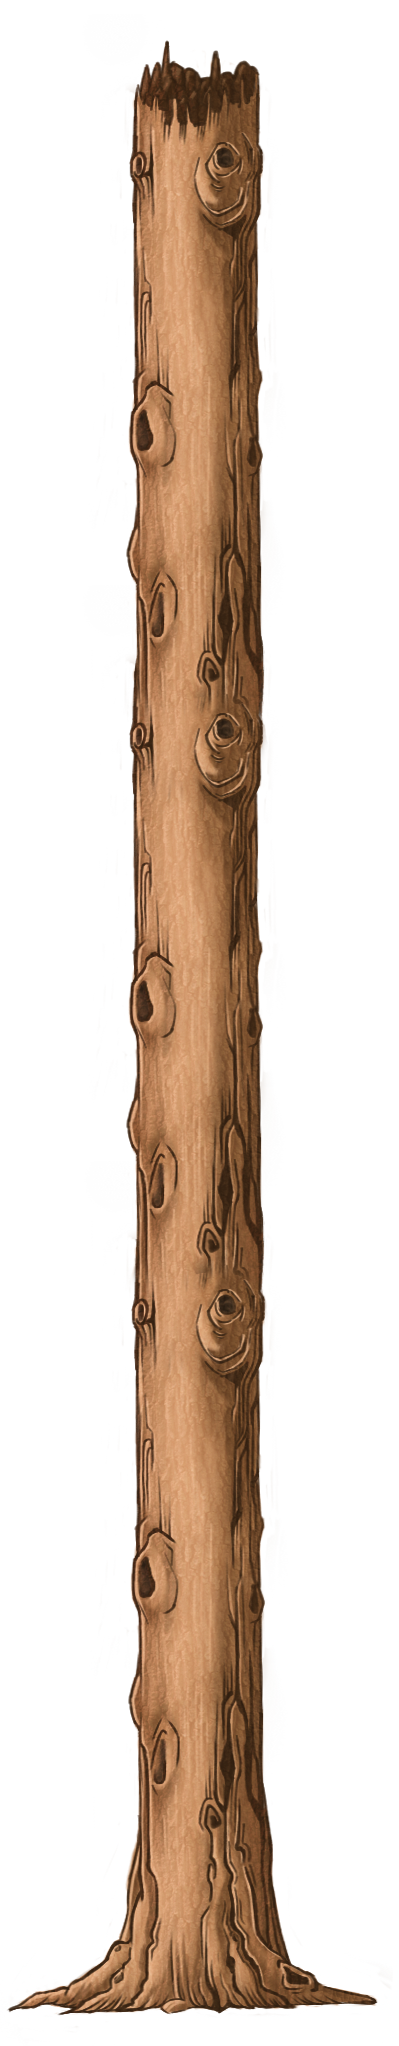 Trunk 3.png